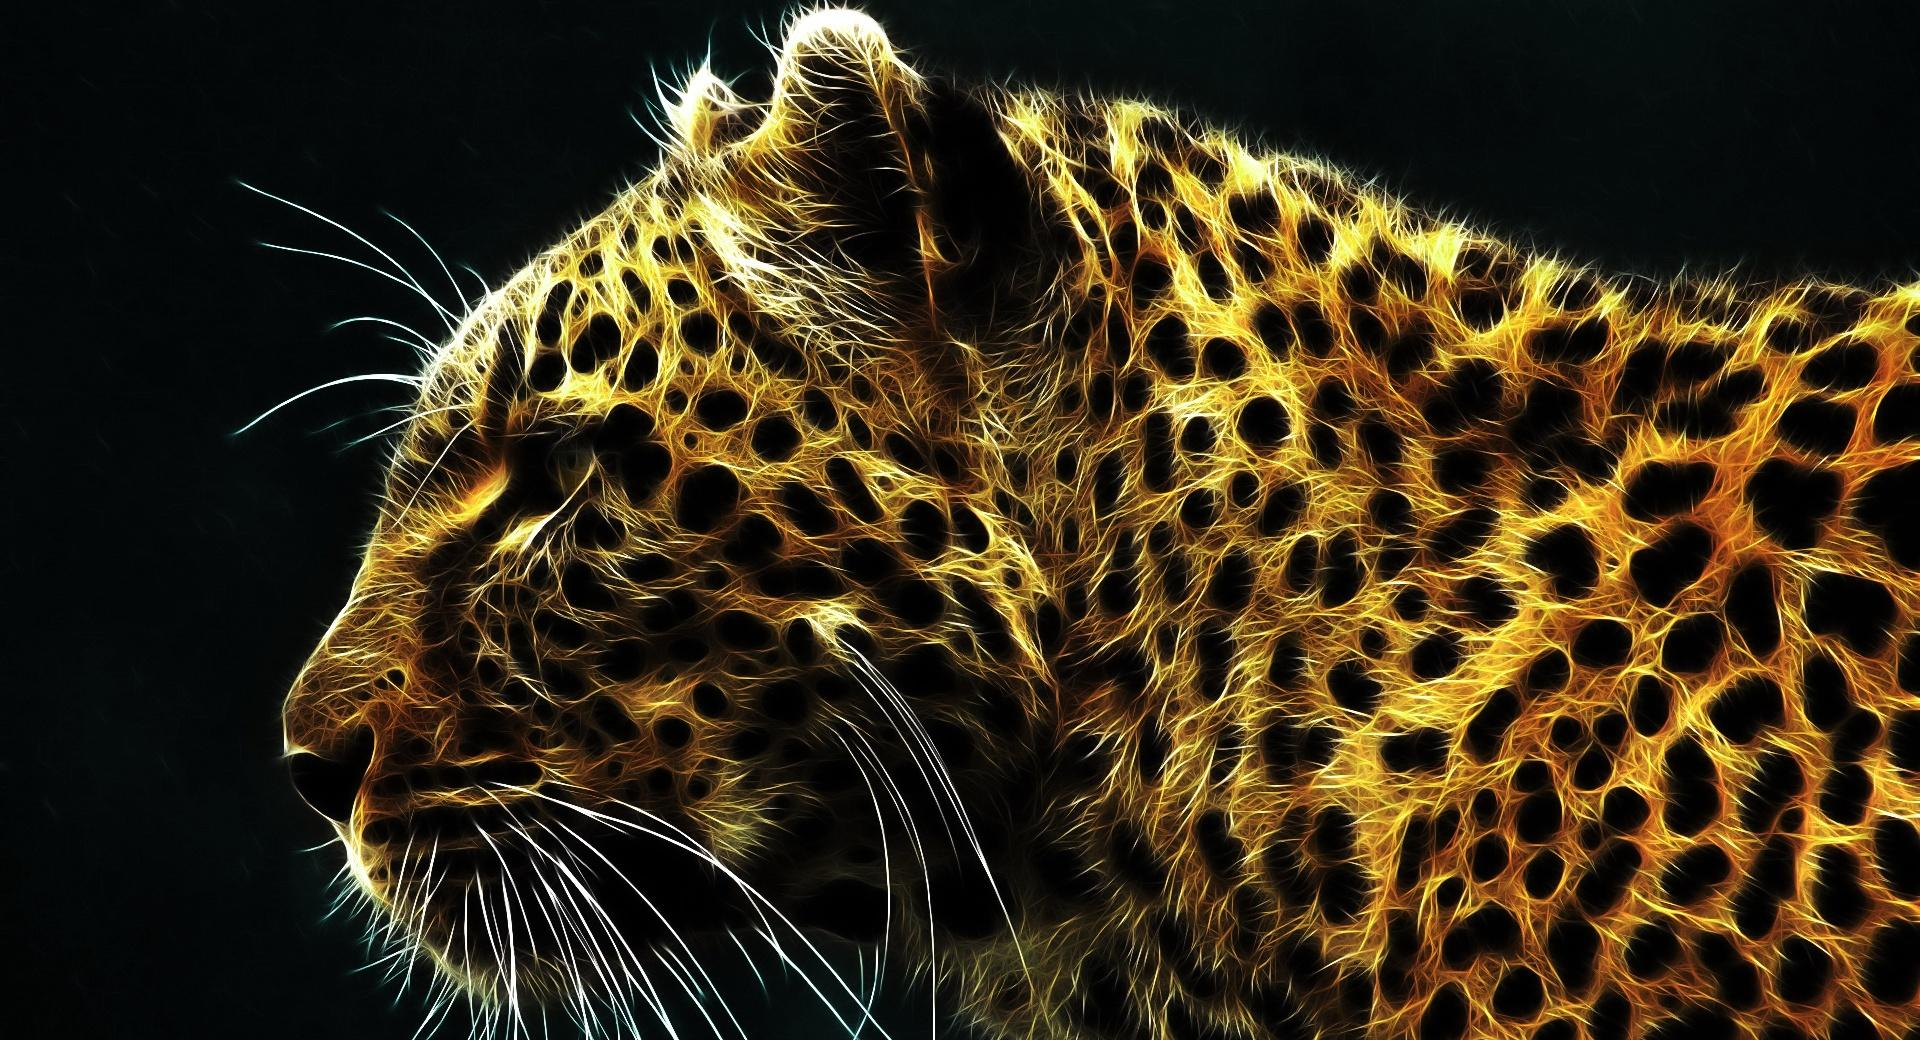 Cheetah In Fire wallpapers HD quality